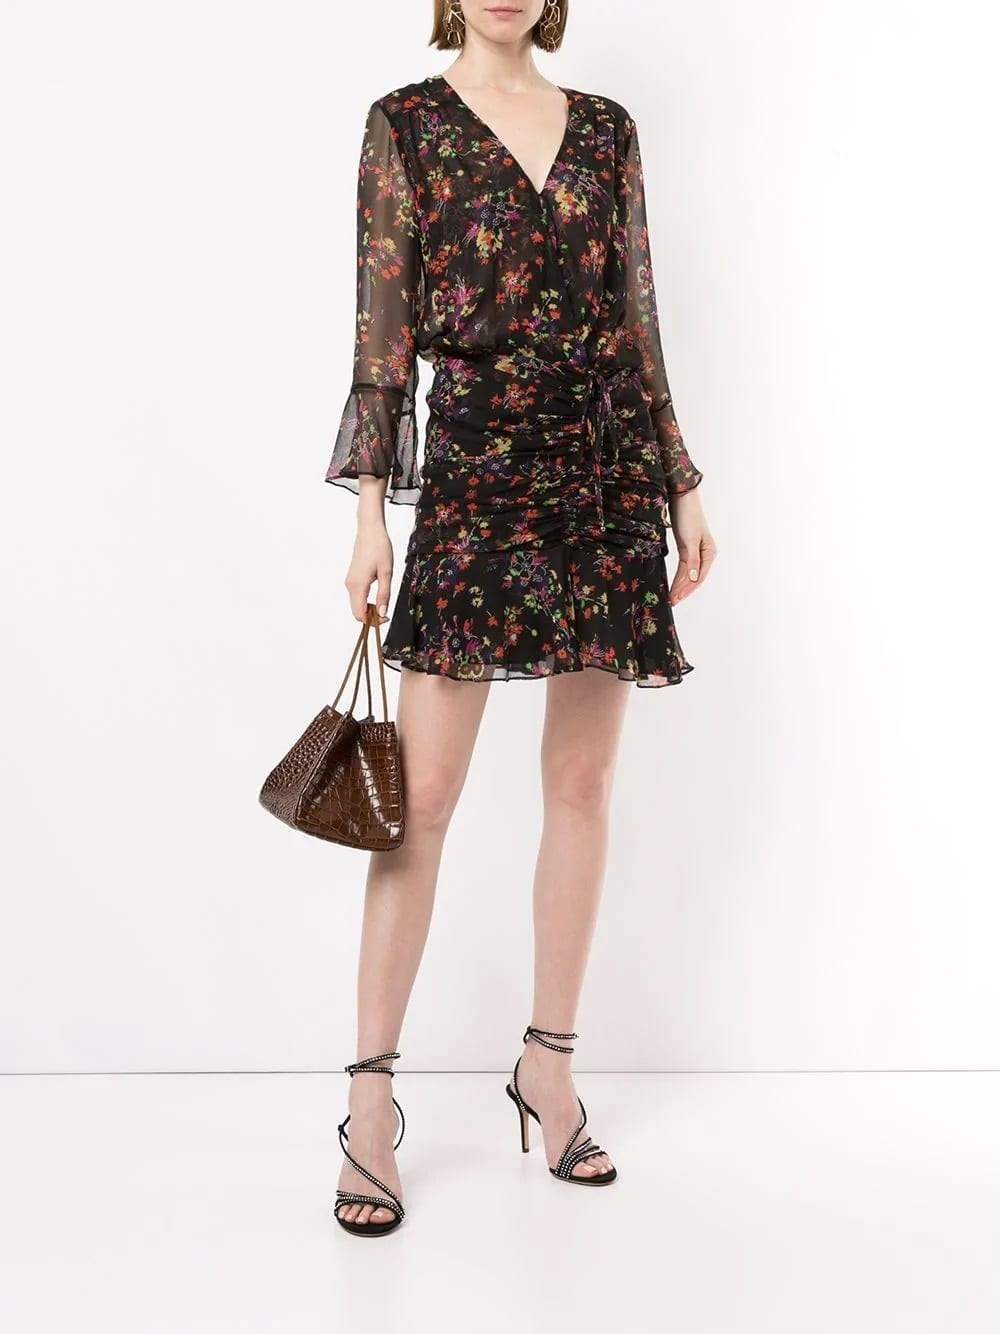 VERONICA BEARD Sean Black Floral Printed Dress